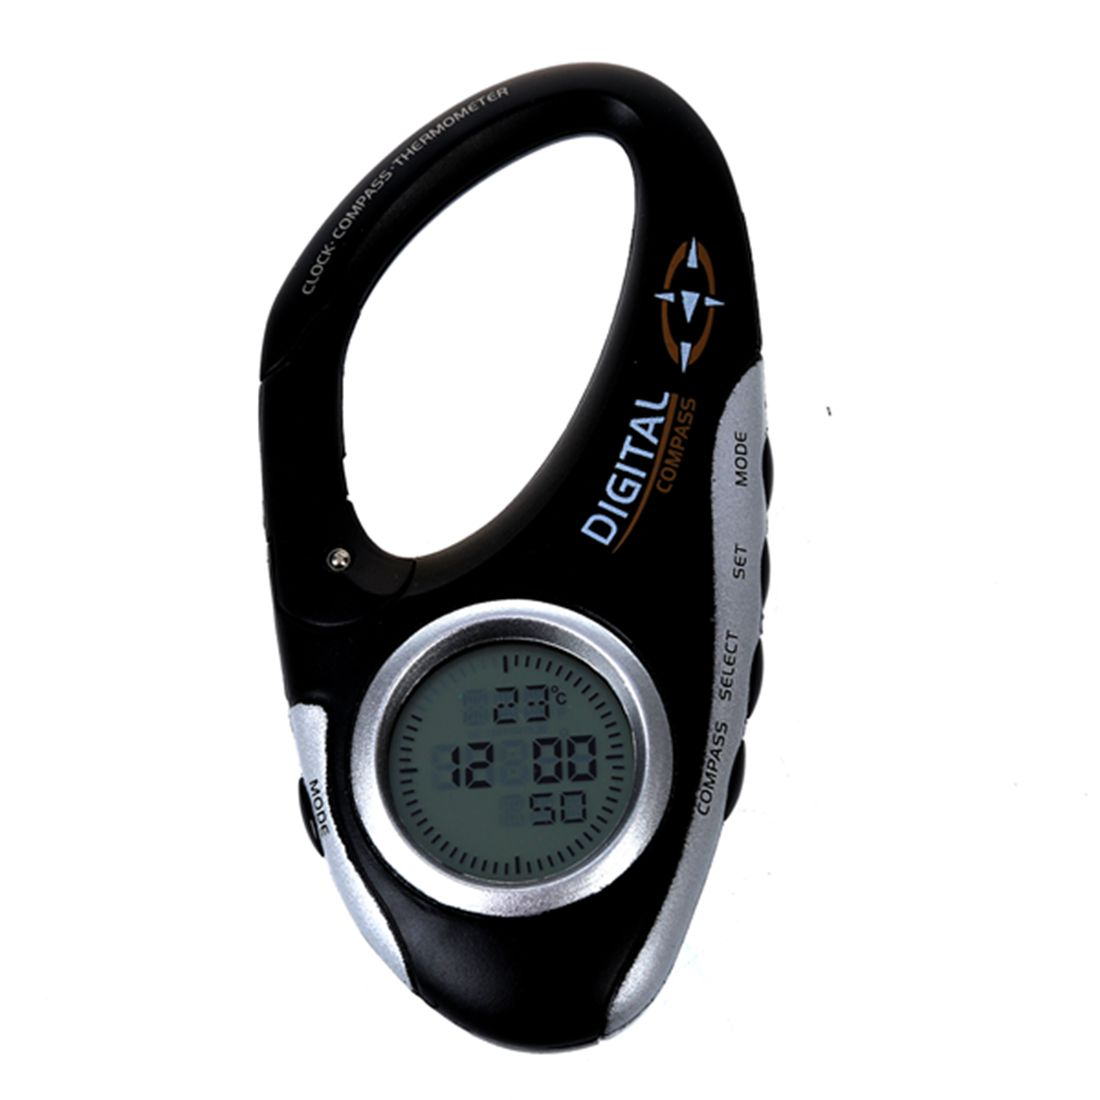 Wholesale 5pcs of Carabiner formula digital Compass thermometer skirt olimara skirt